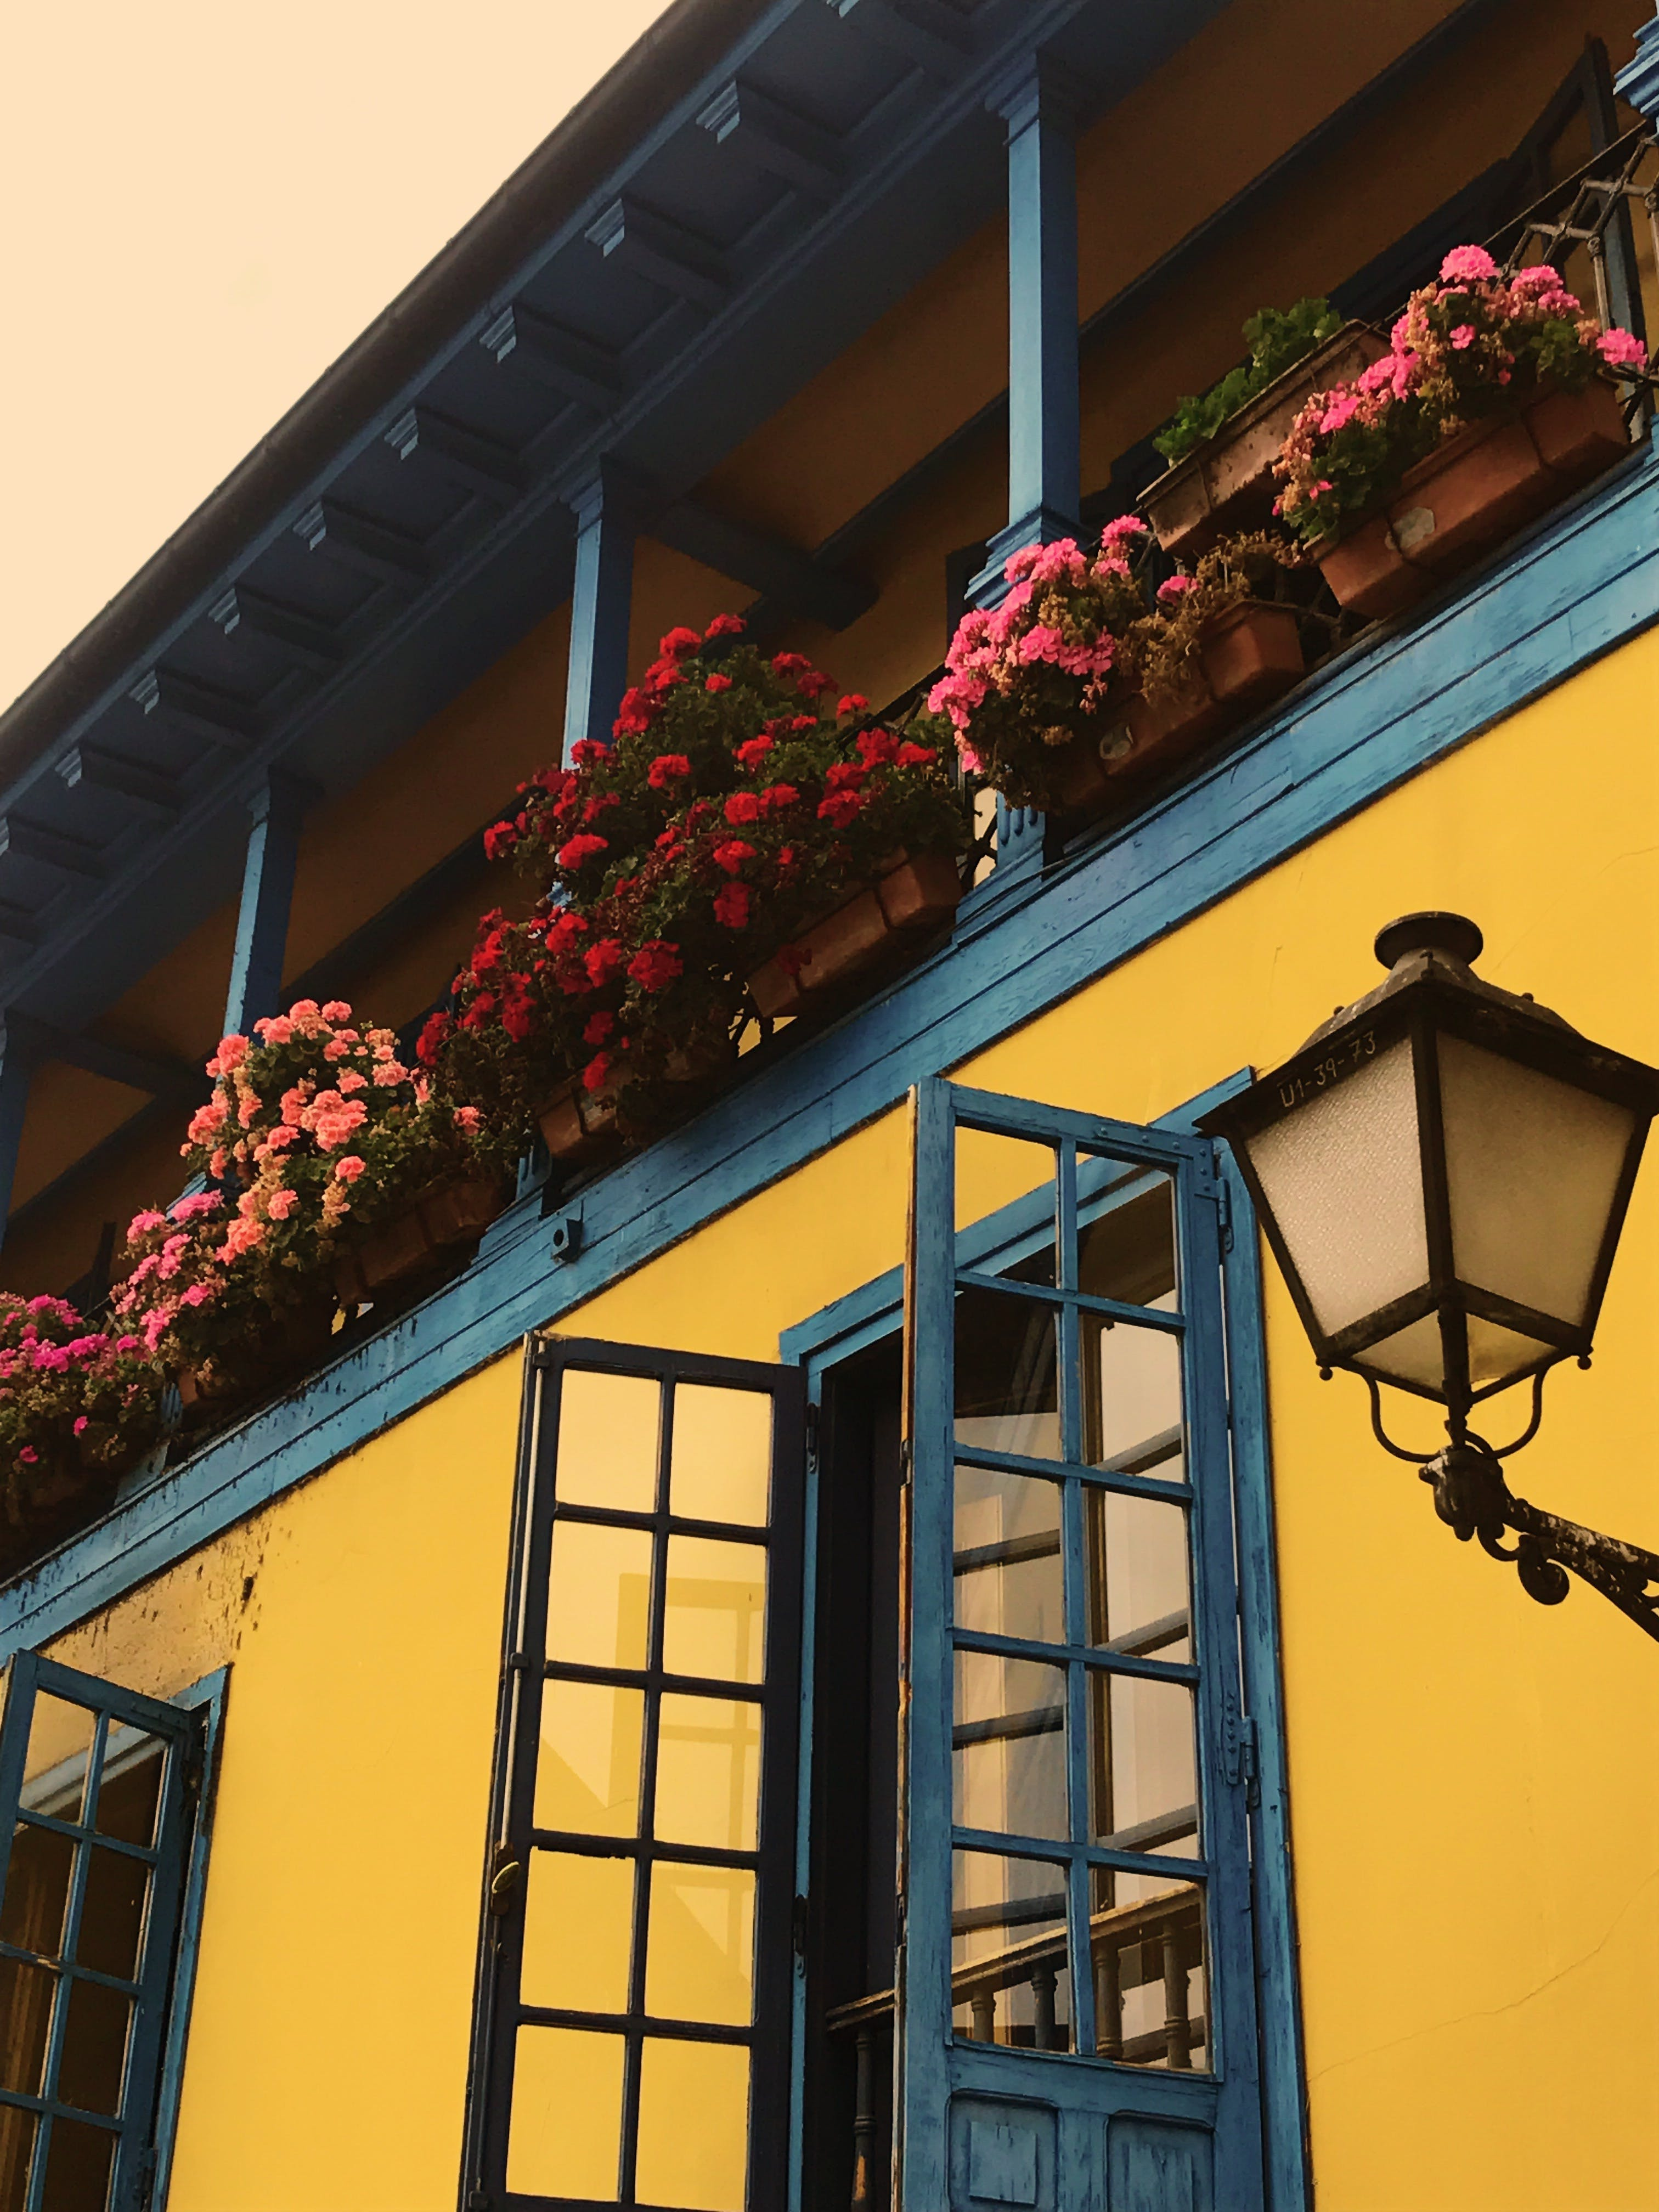 Balcony With Pink and Red Petaled Flowers